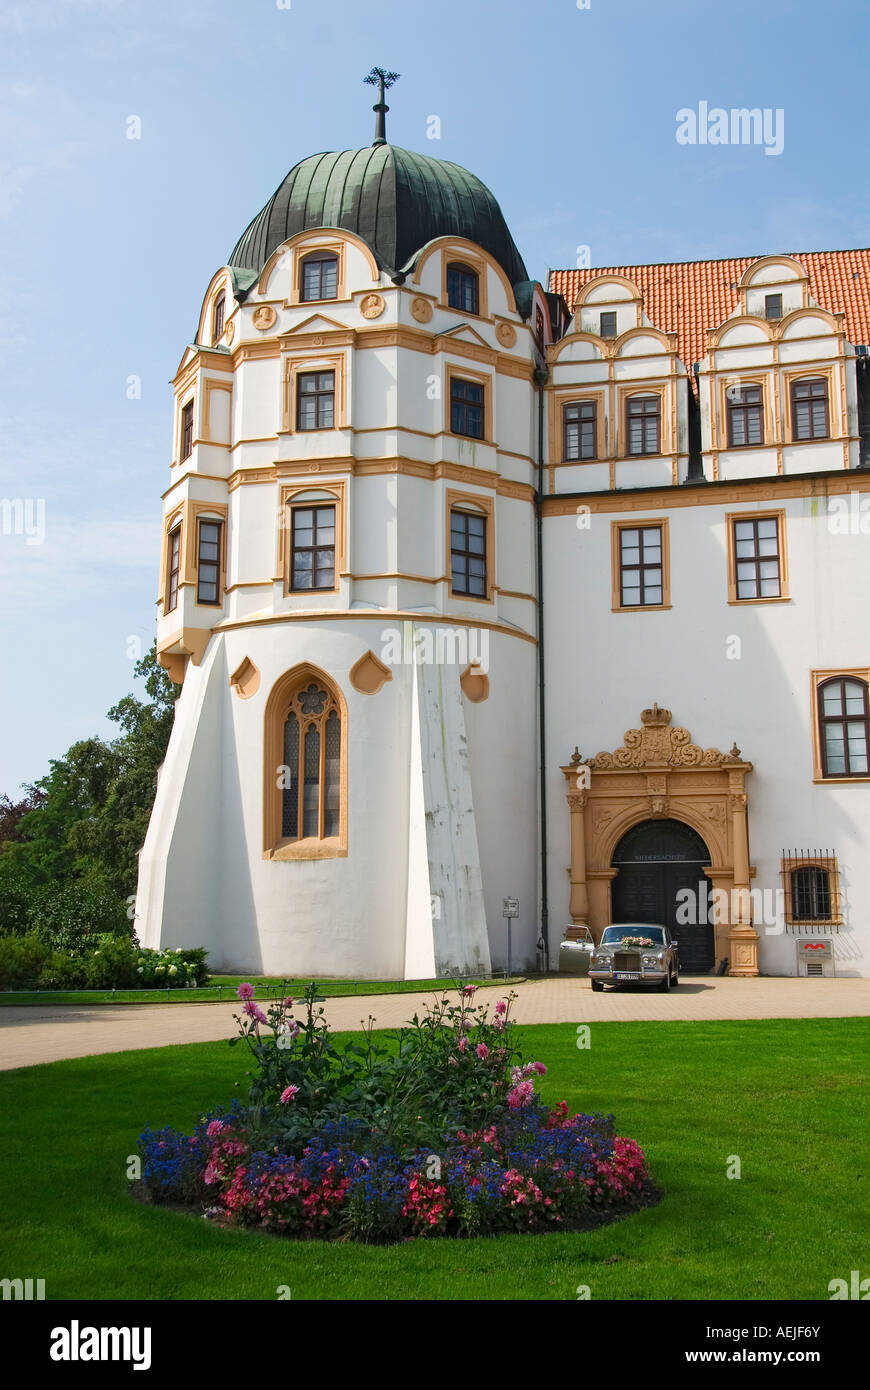 Castle Celler Schloss, Celle, Lower Saxony, Germany - Stock Image